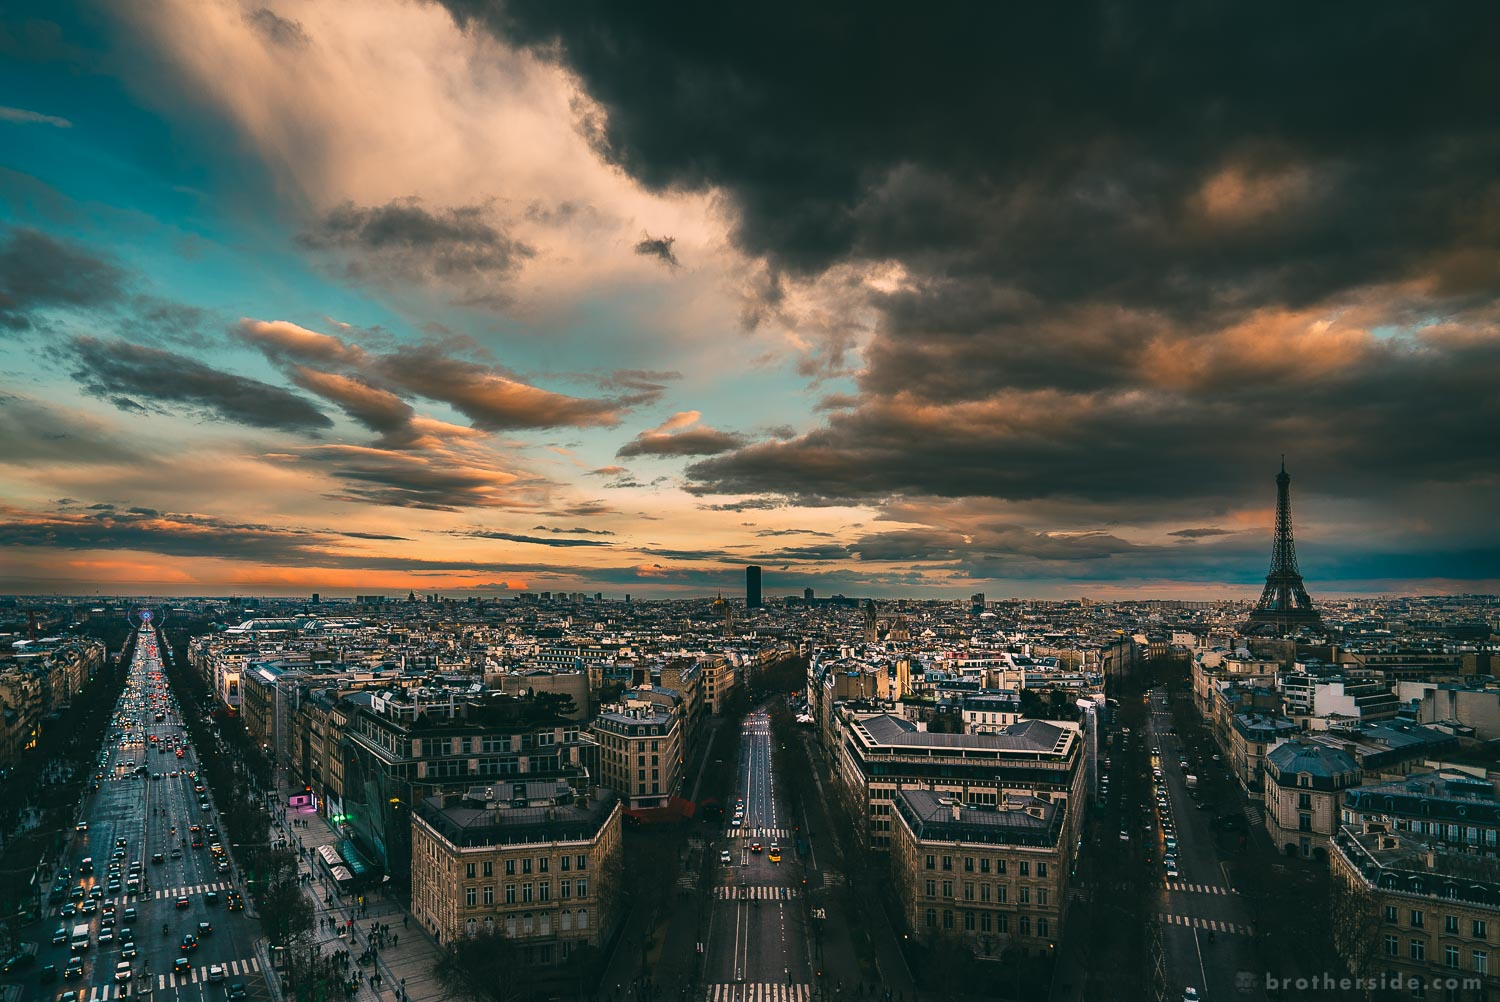 View from the top of Arc de Triomphe. The black stain in the middle is the Montparnasse Tower. [Sony a7Sii +16-35 f/4 @ 16 mm, f/4, 1/160 s, ISO 200]